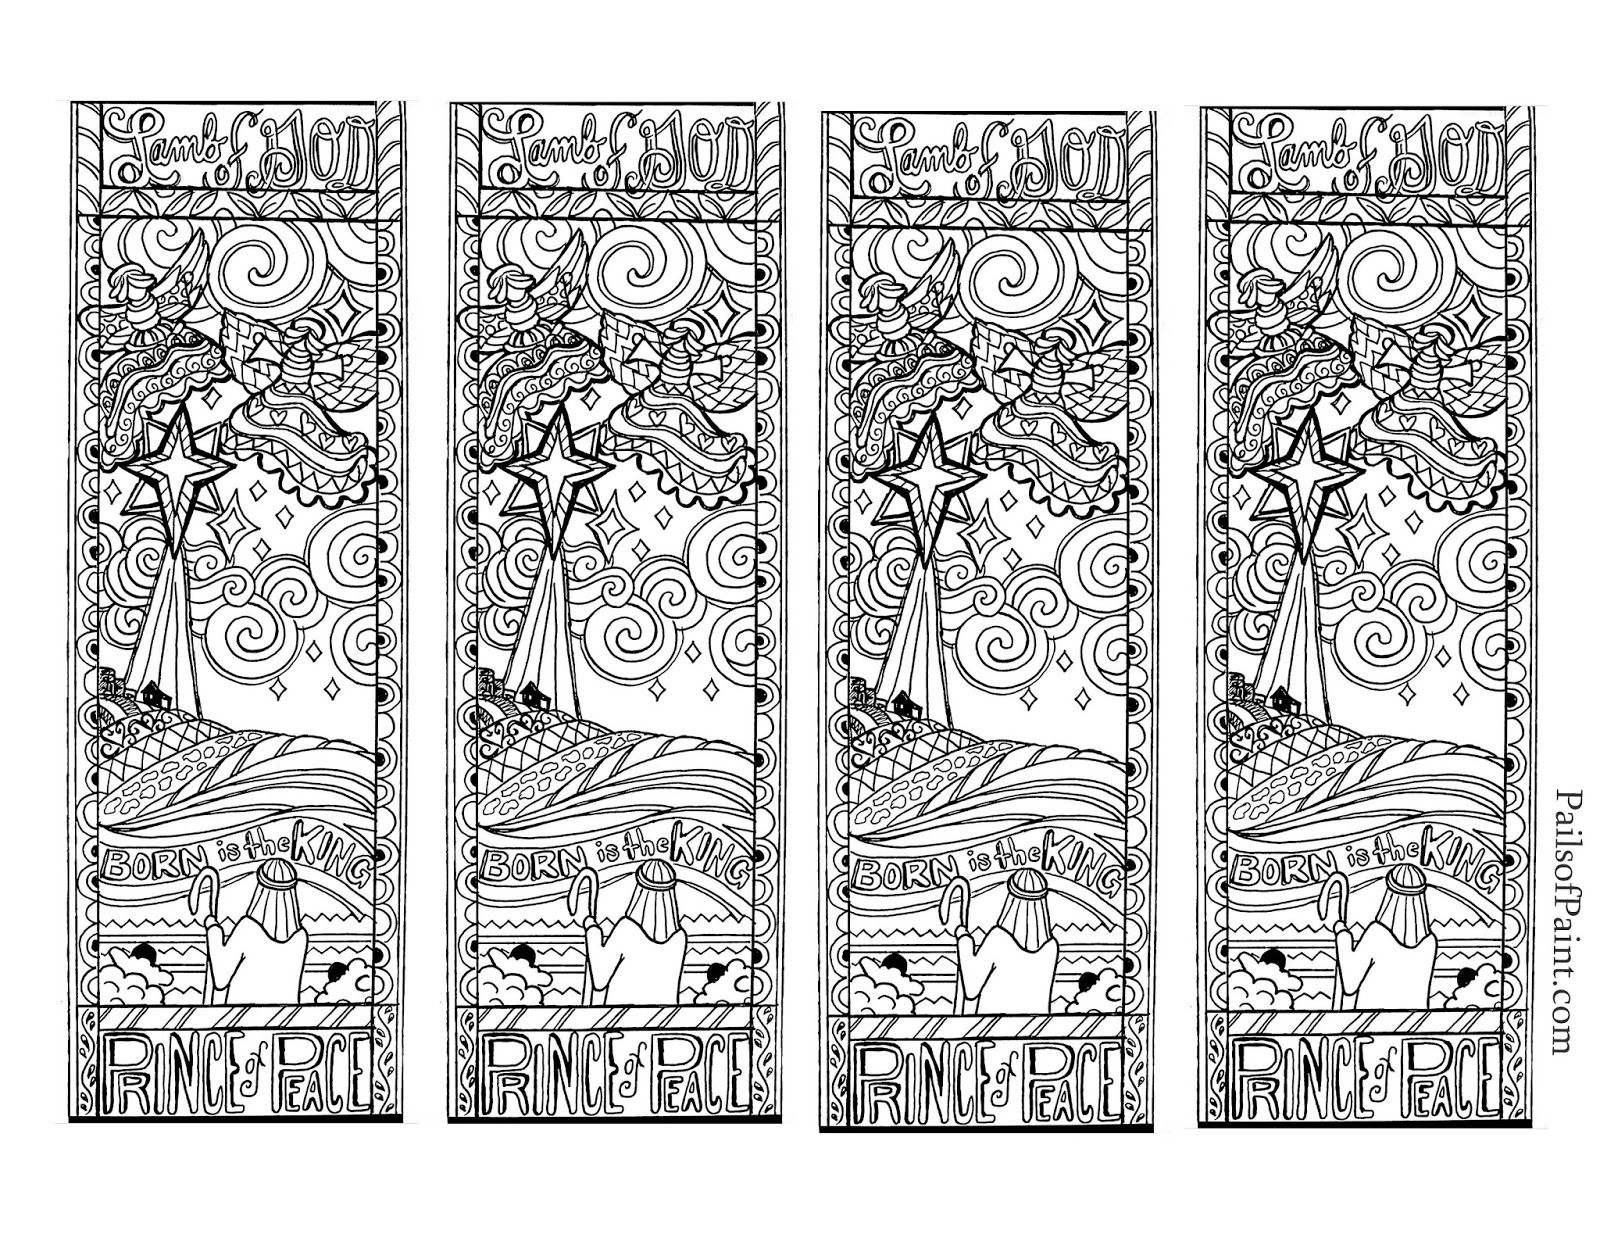 free printable dragon bookmarks to color | TimyKids